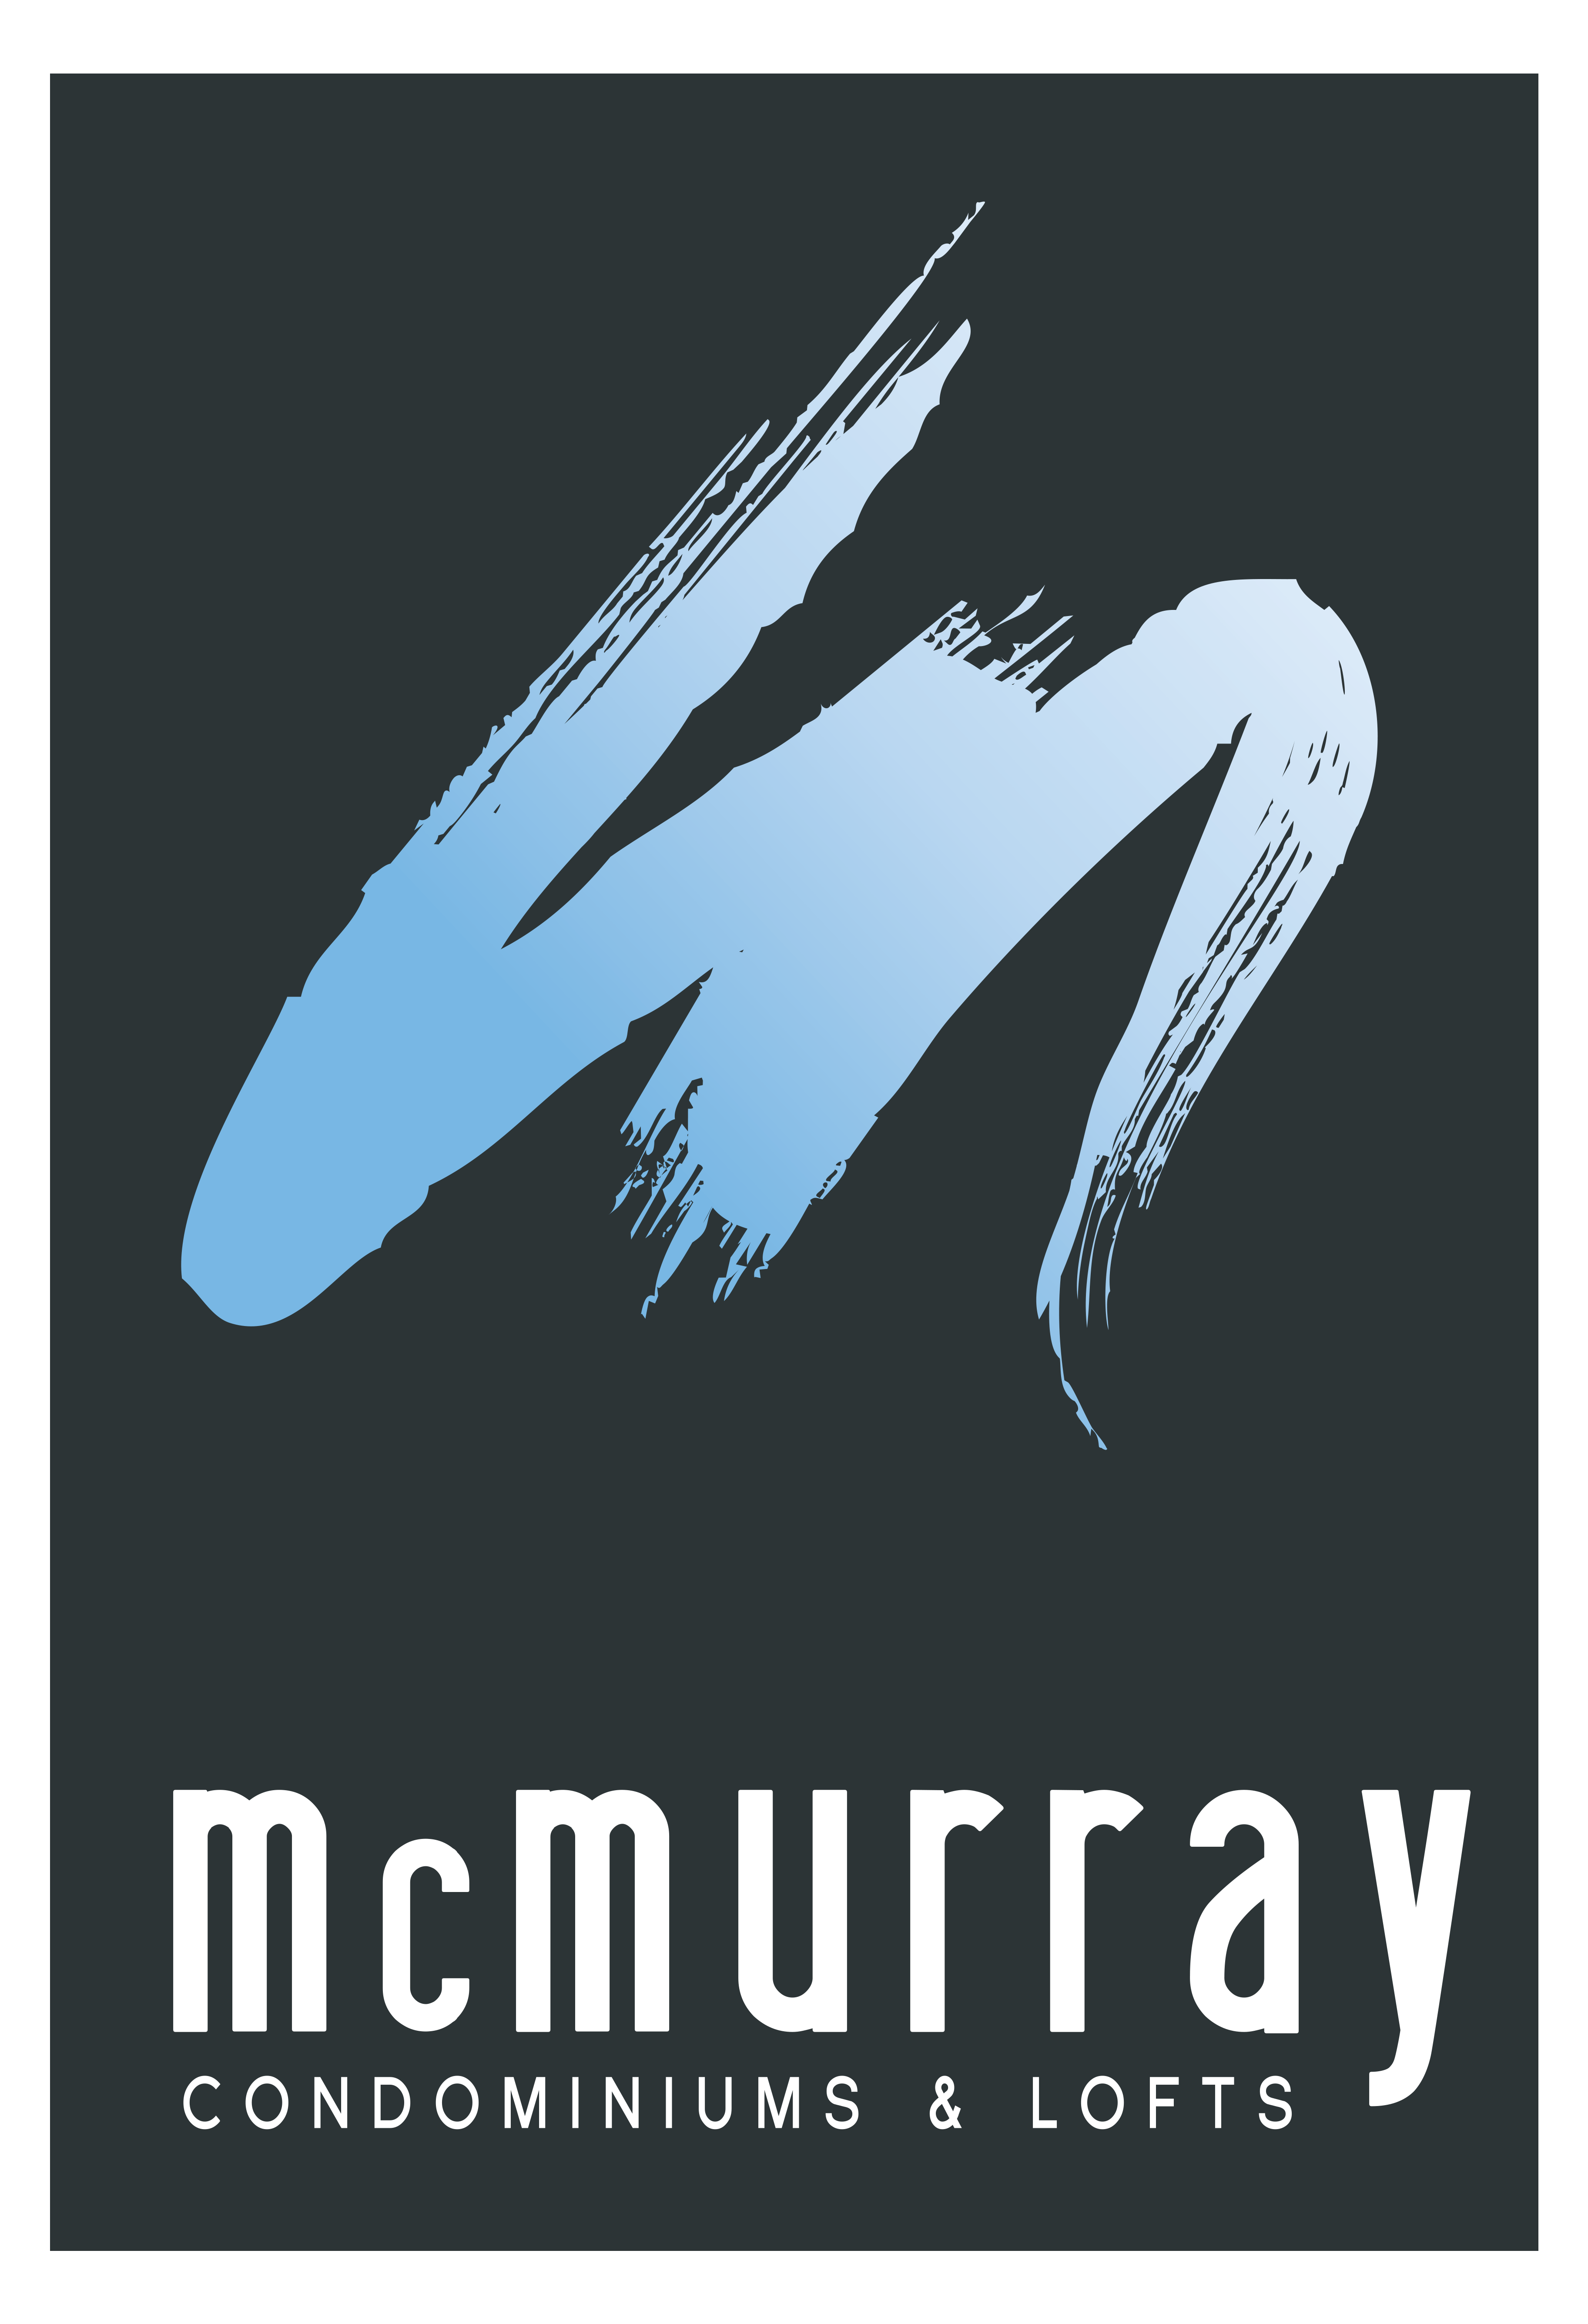 High Rise, John Davies,  McMurray Condominiums & Lofts , Logo